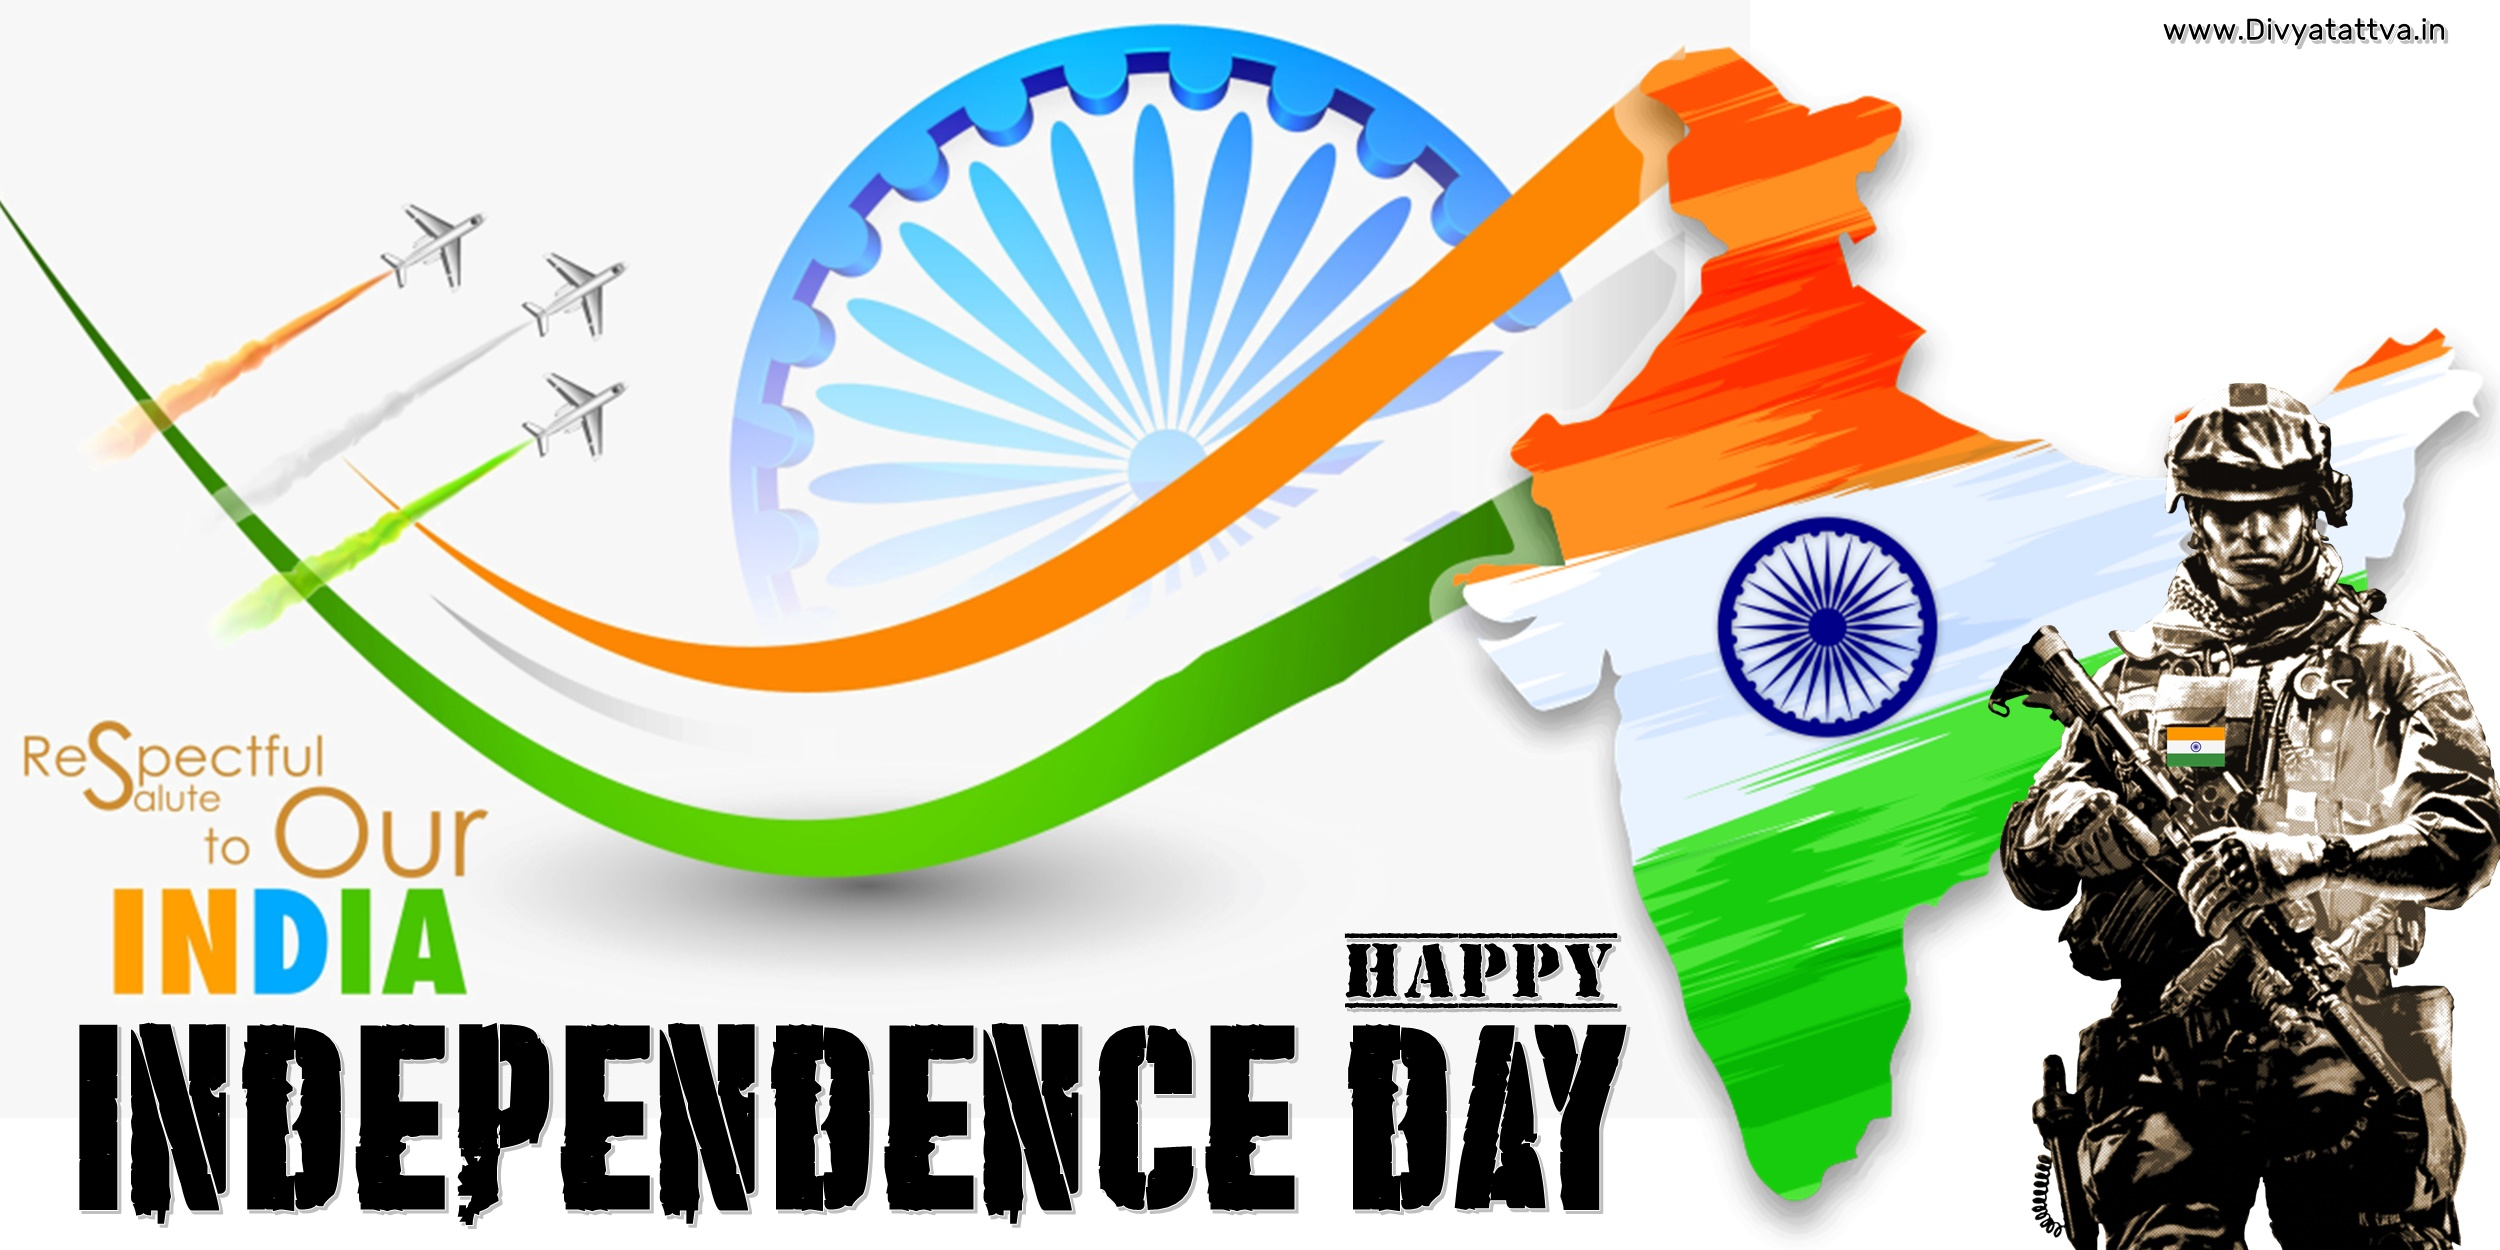 Happy Independence Day 15th Aug India Greetings Messages & Wallpapers